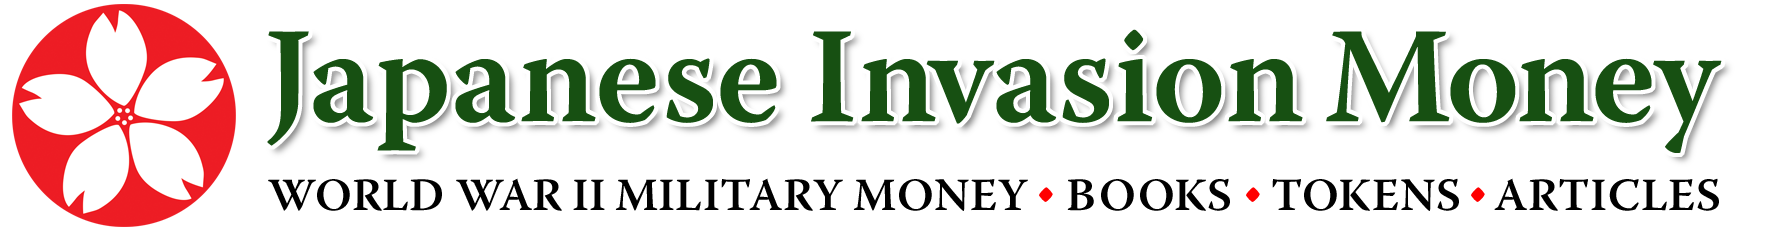 Japanese Invasion Money website logo